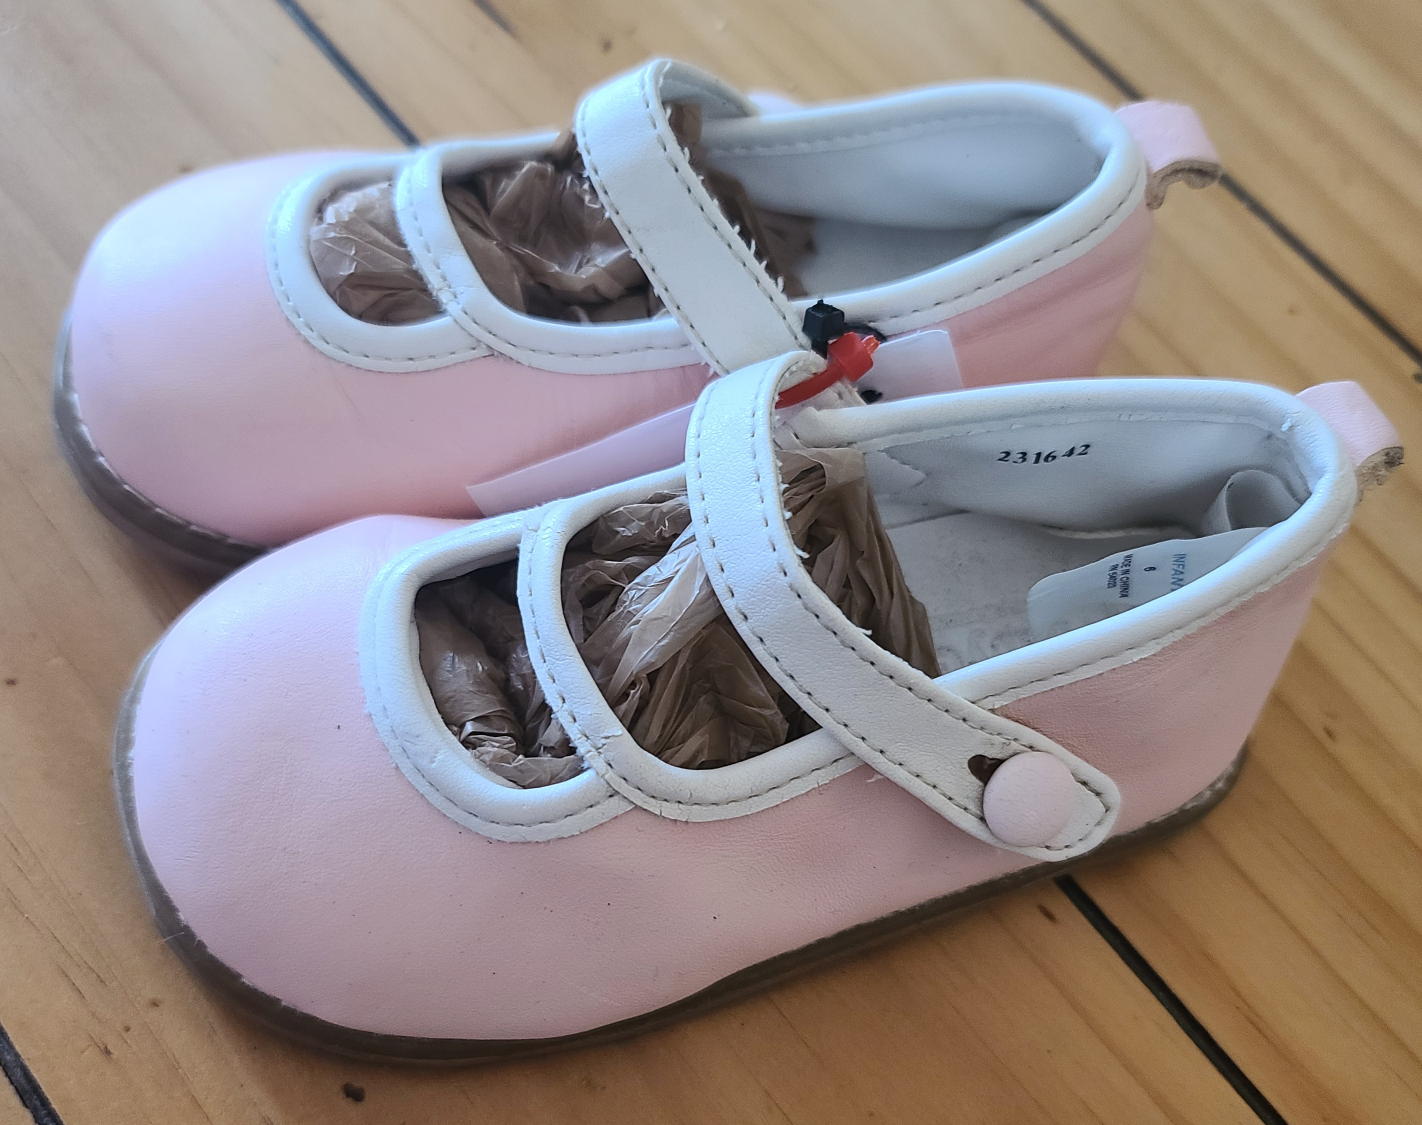 BABY GAP pink dress shoes, Toddler Girls size 6